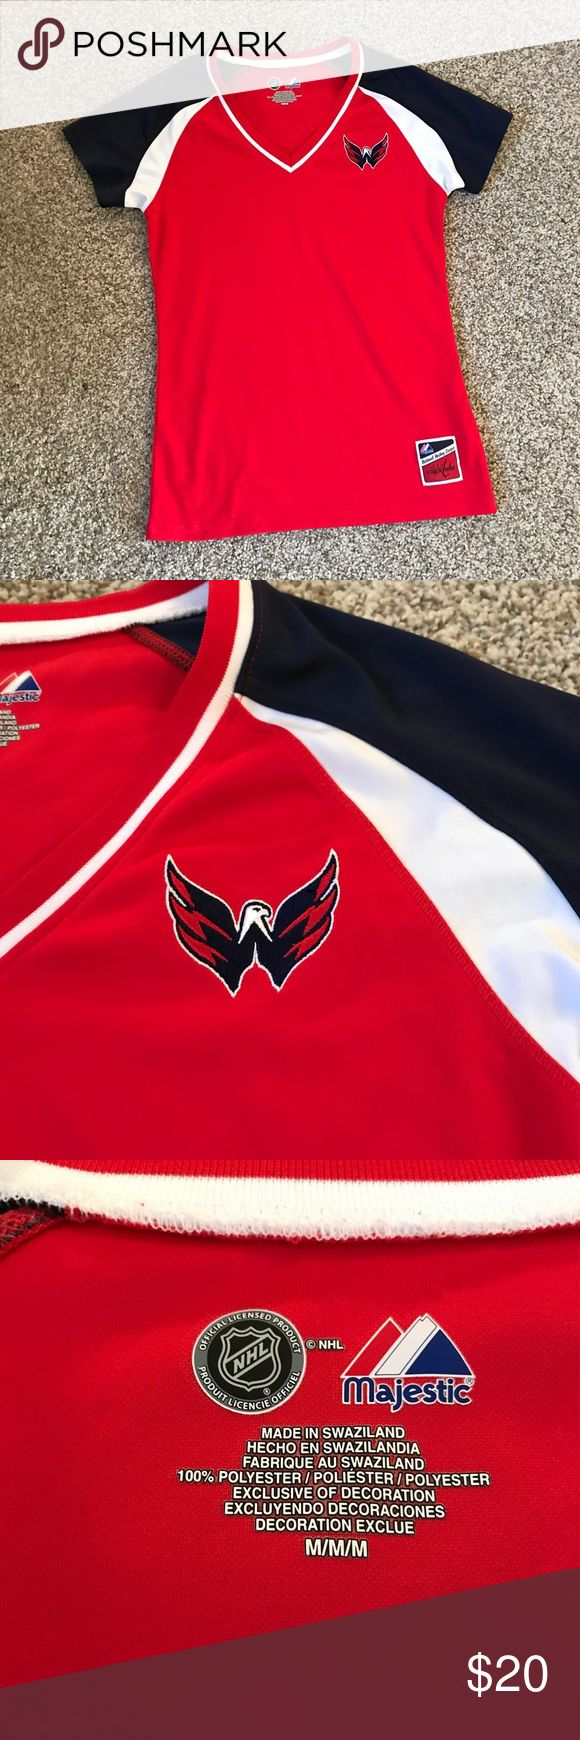 Washington Capitals NHL Women's Jersey Medium NEW New without tags. Cute slim cut jersey material short sleeve top. Ladies size medium. C-A-P-S CAPS CAPS CAPS! ❣️ REASONABLE offers are accepted! No trades please. Tops Tees - Short Sleeve